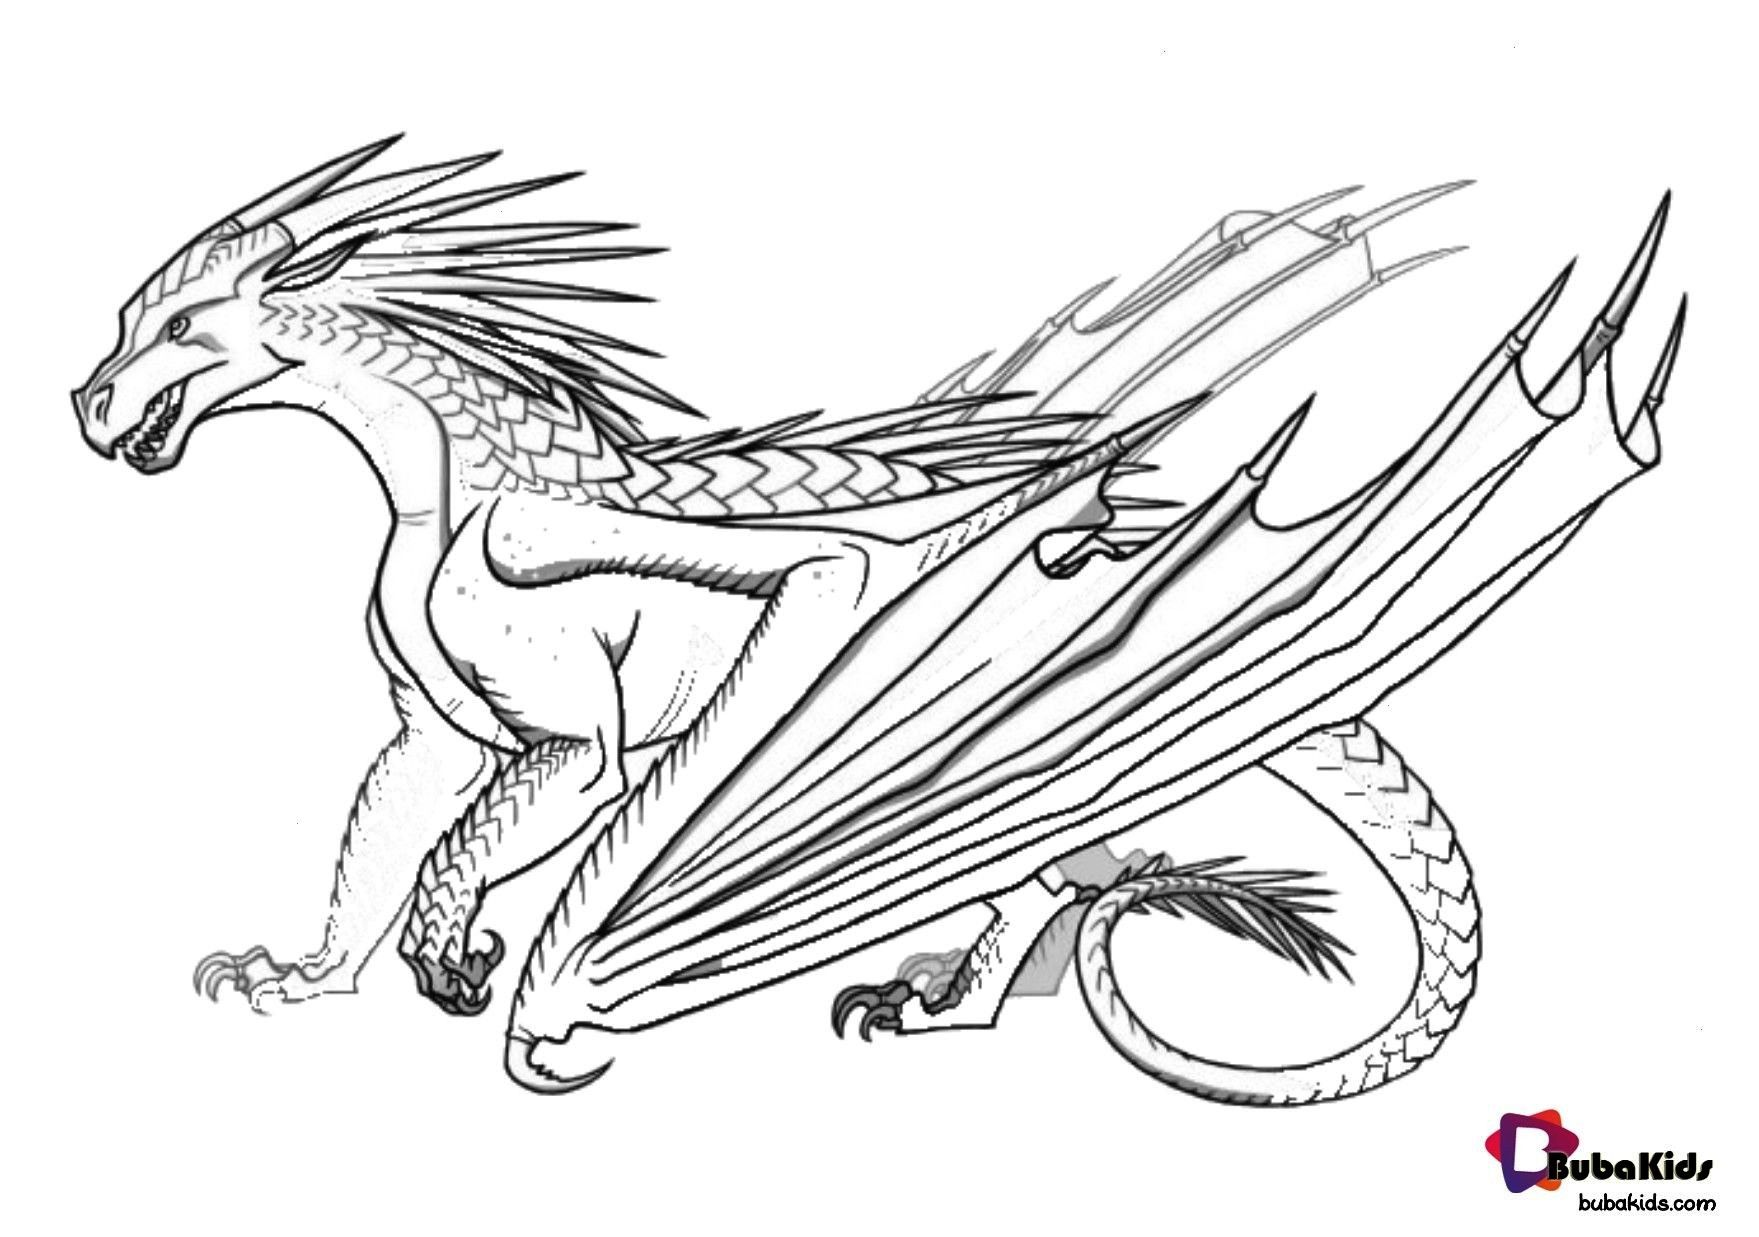 Collection Legendary Creatures Printable Mythfree Creature Thatfree Download Coloring Teenage Cartoo In 2020 Wings Of Fire Wings Of Fire Dragons Fire Dragon